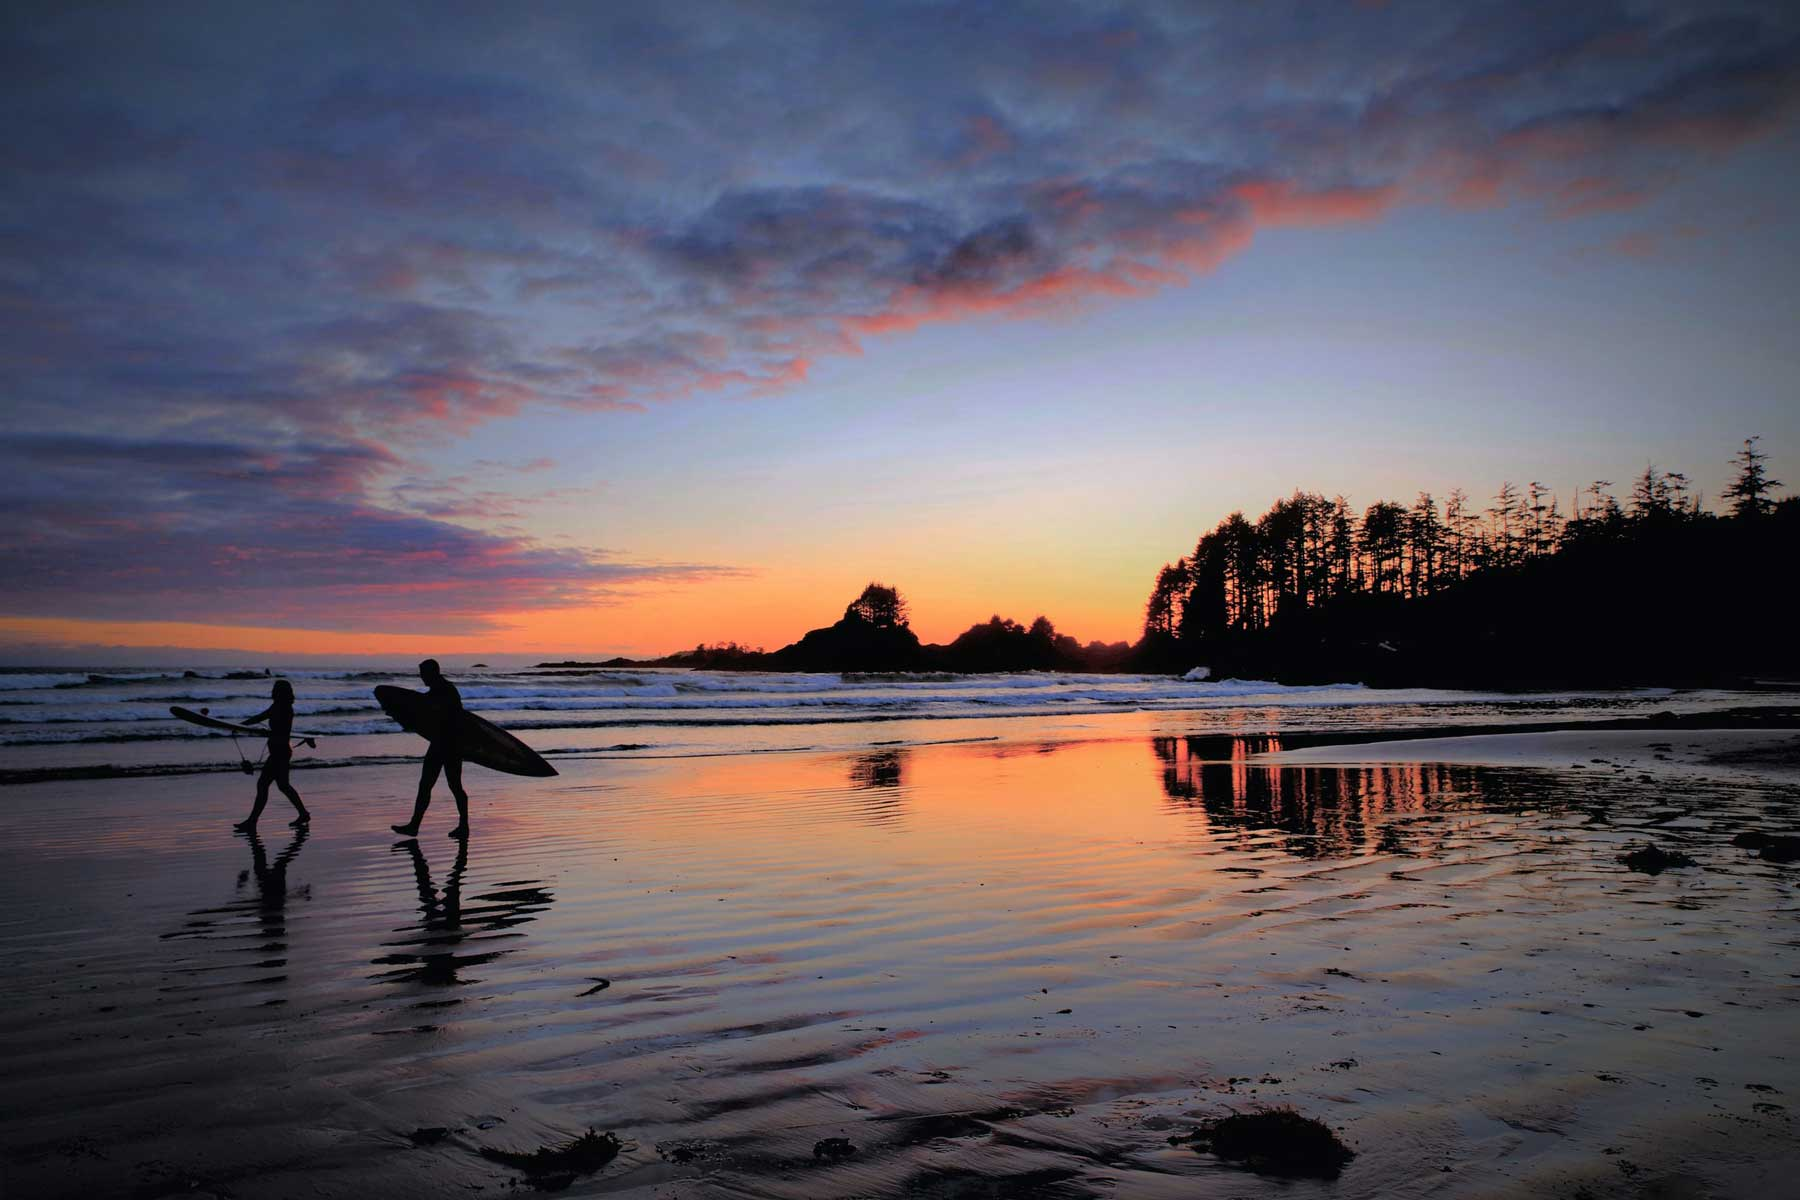 Sunset in one Tofino, one of the top travel destinations in Canada.